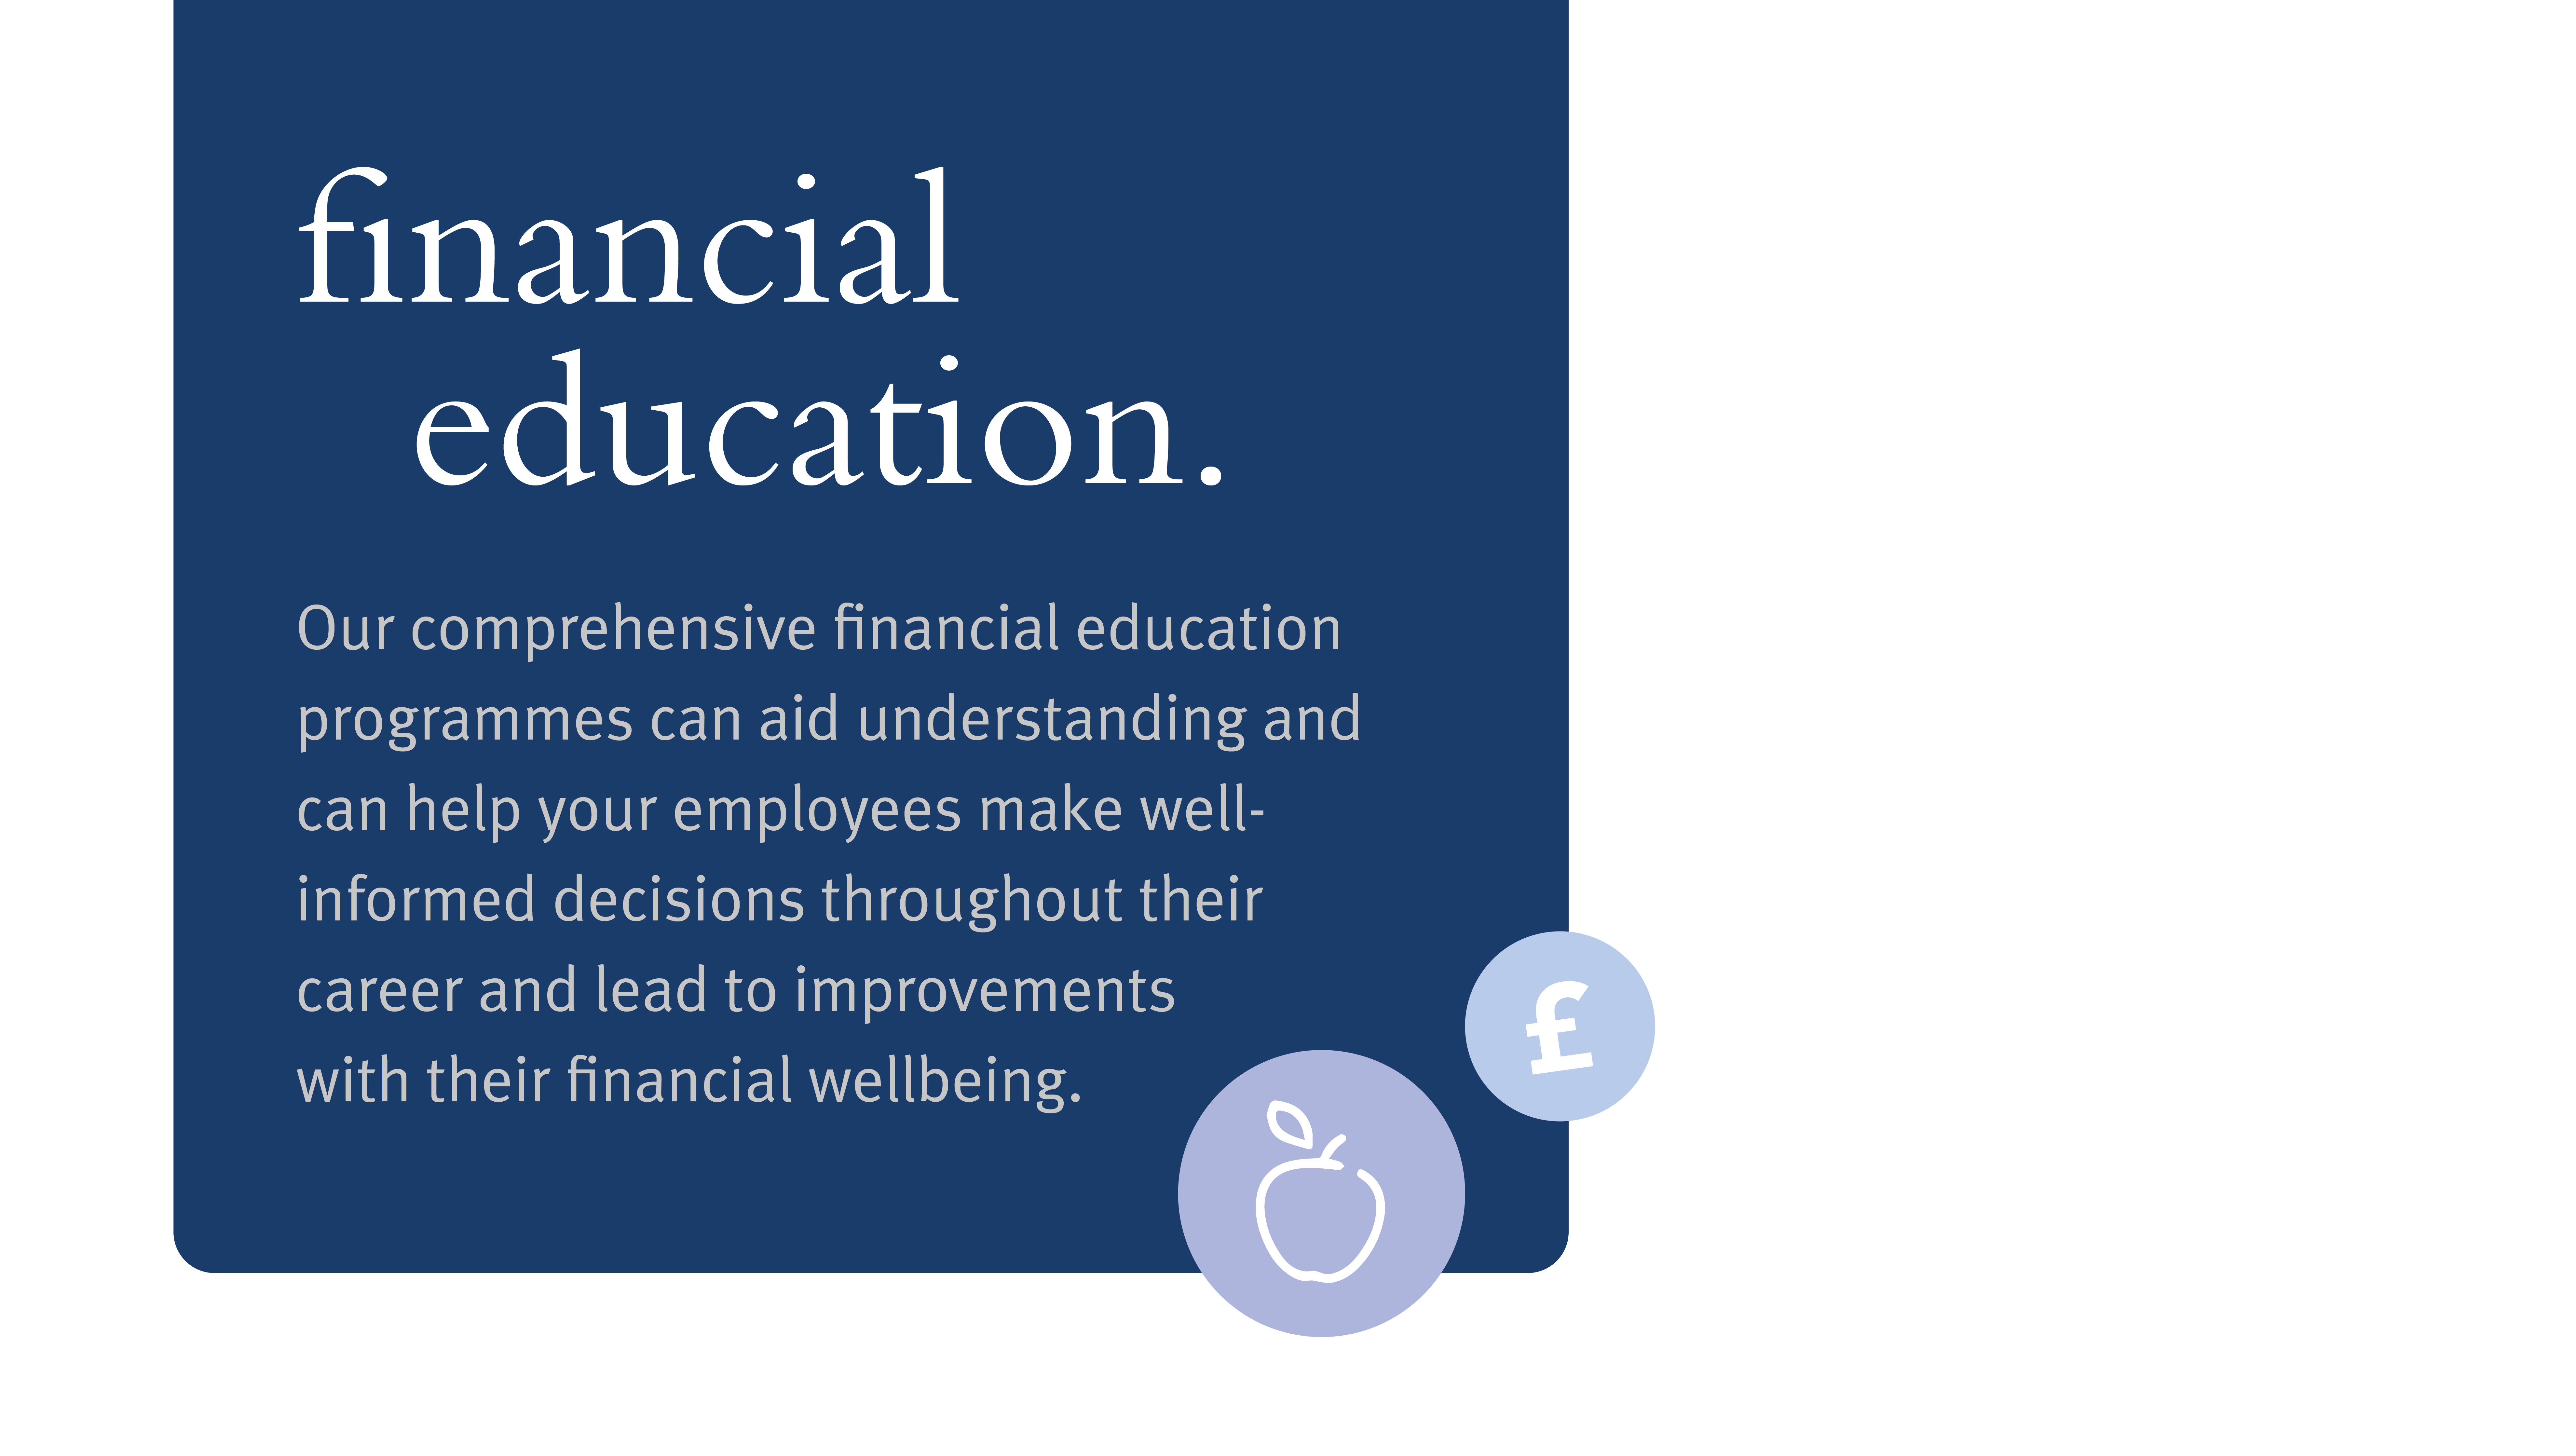 Image reads: Financial Education. Our comprehensive financial education programmes can aid understanding and can help your employees make well-informed decisions throughout their career and lead to improvements with their financial wellbeing.